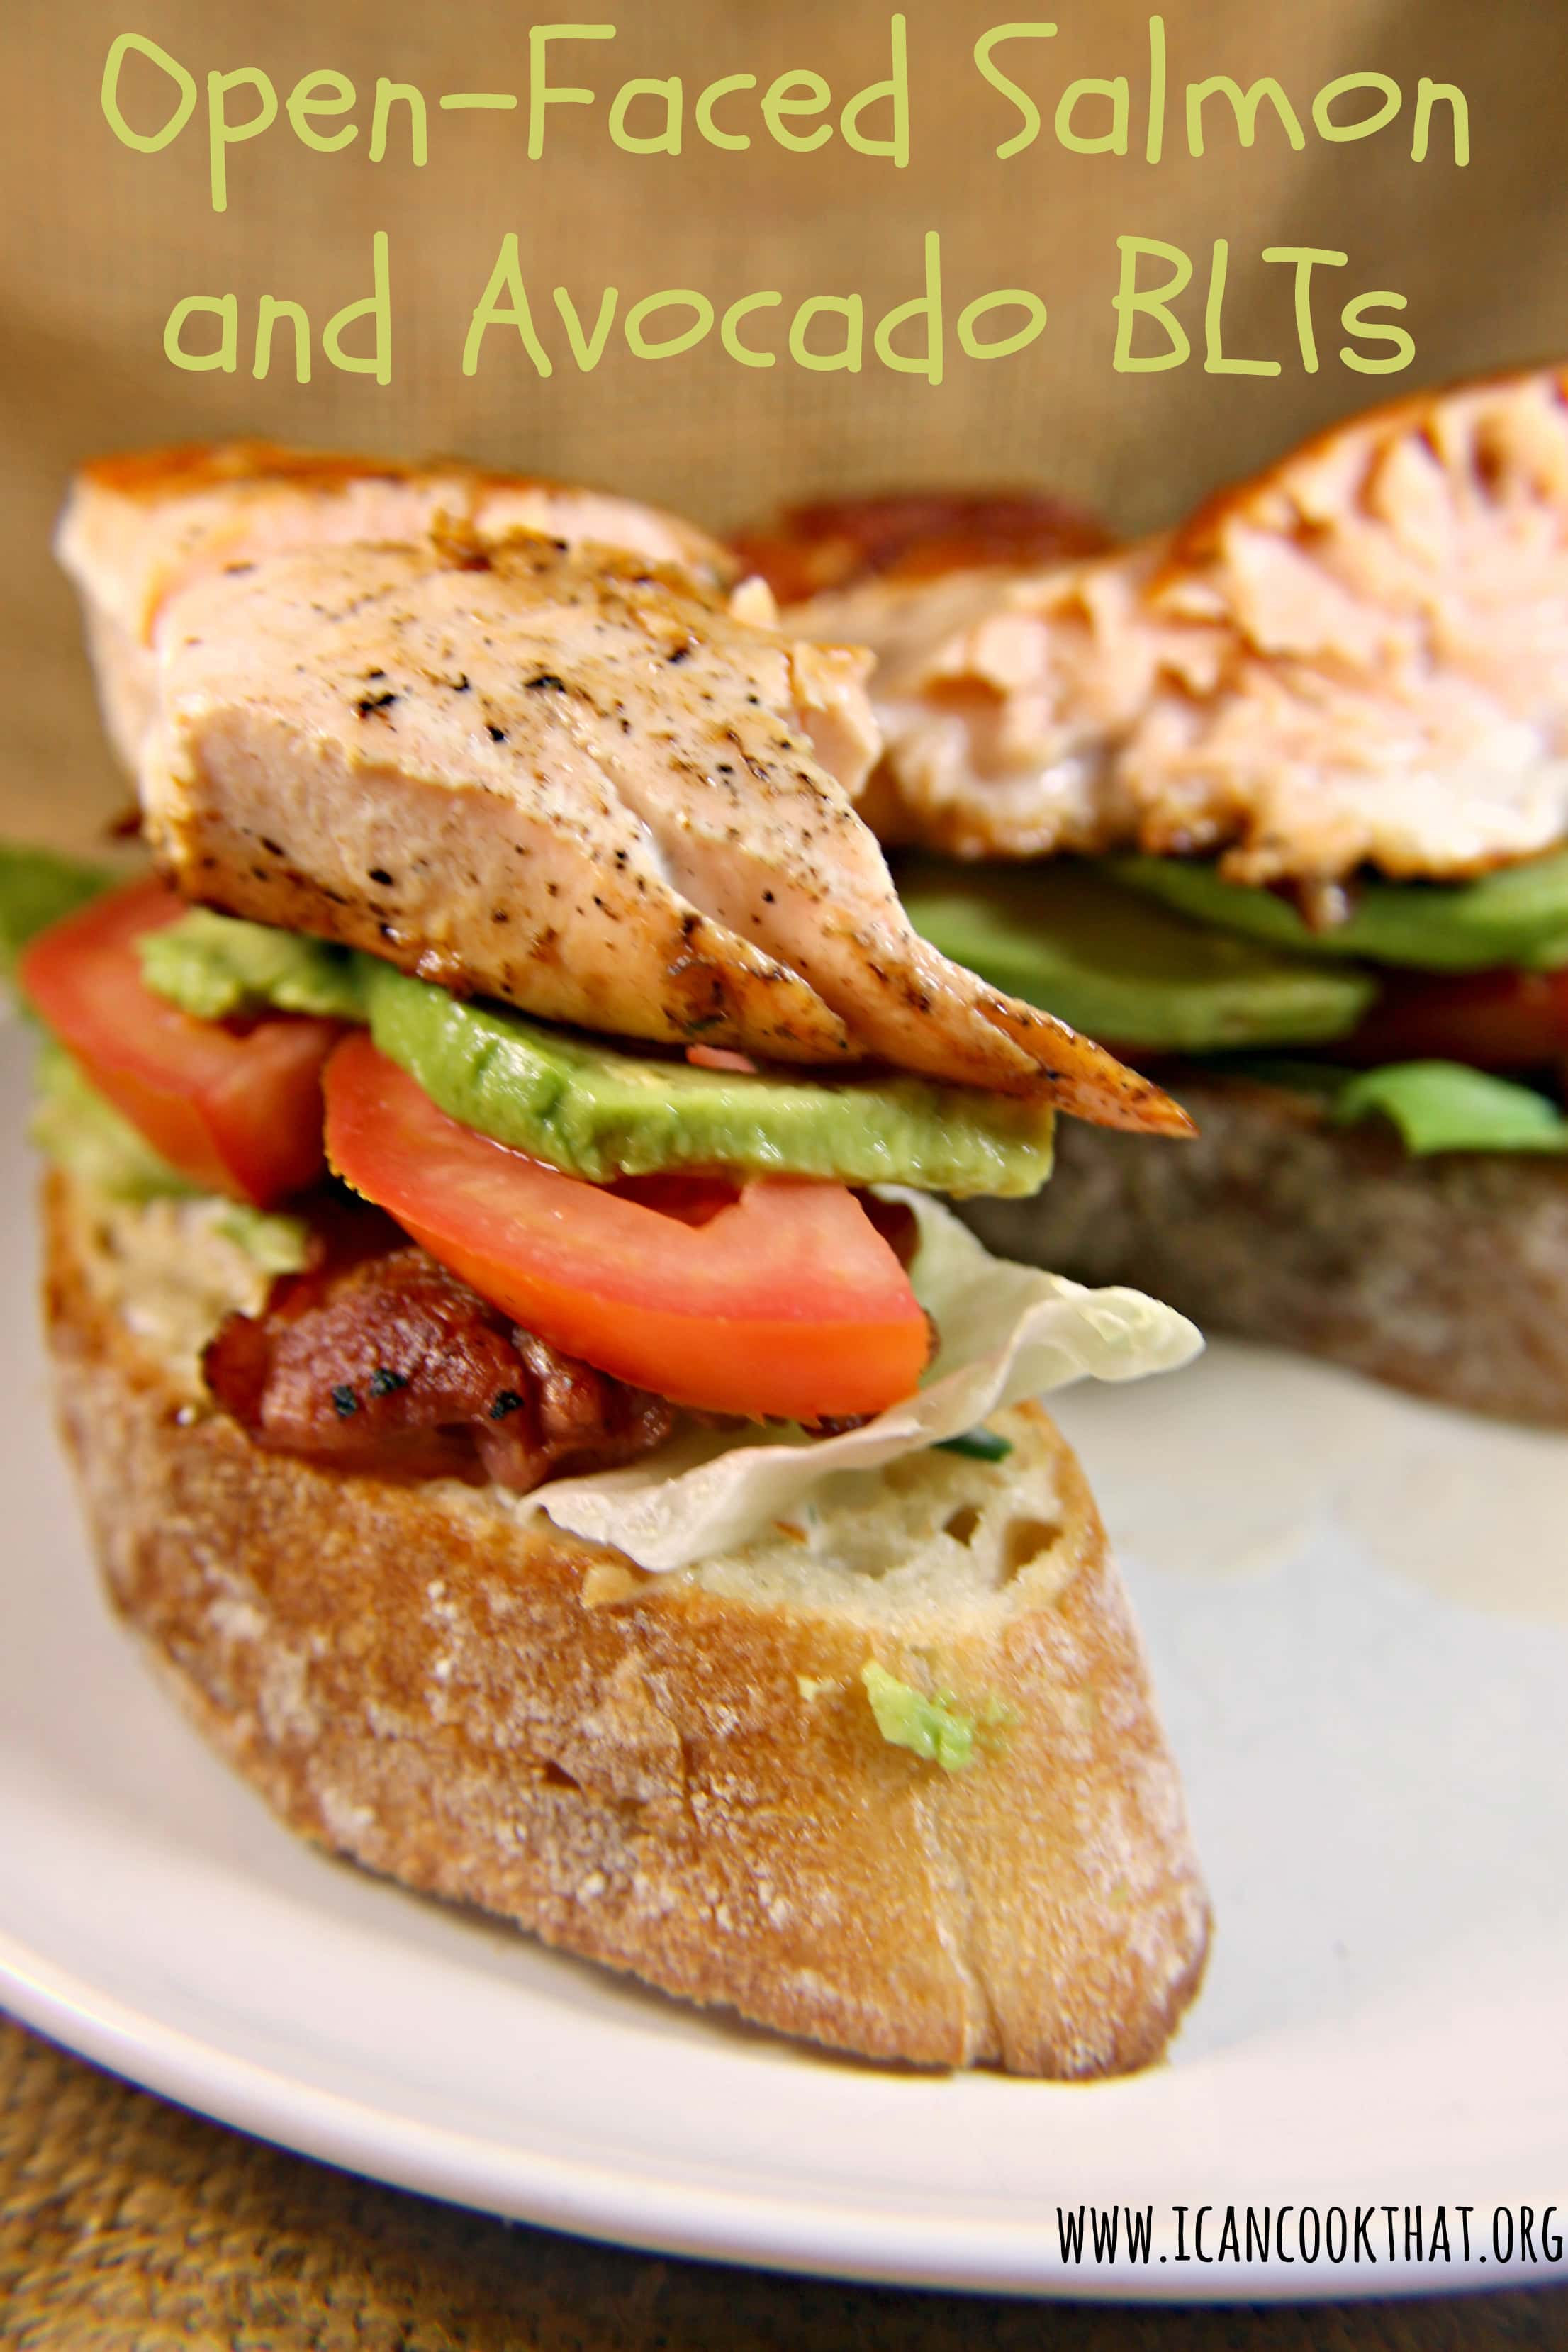 Open-Faced Salmon and Avocado BLT Recipe | I Can Cook That | I Can ...